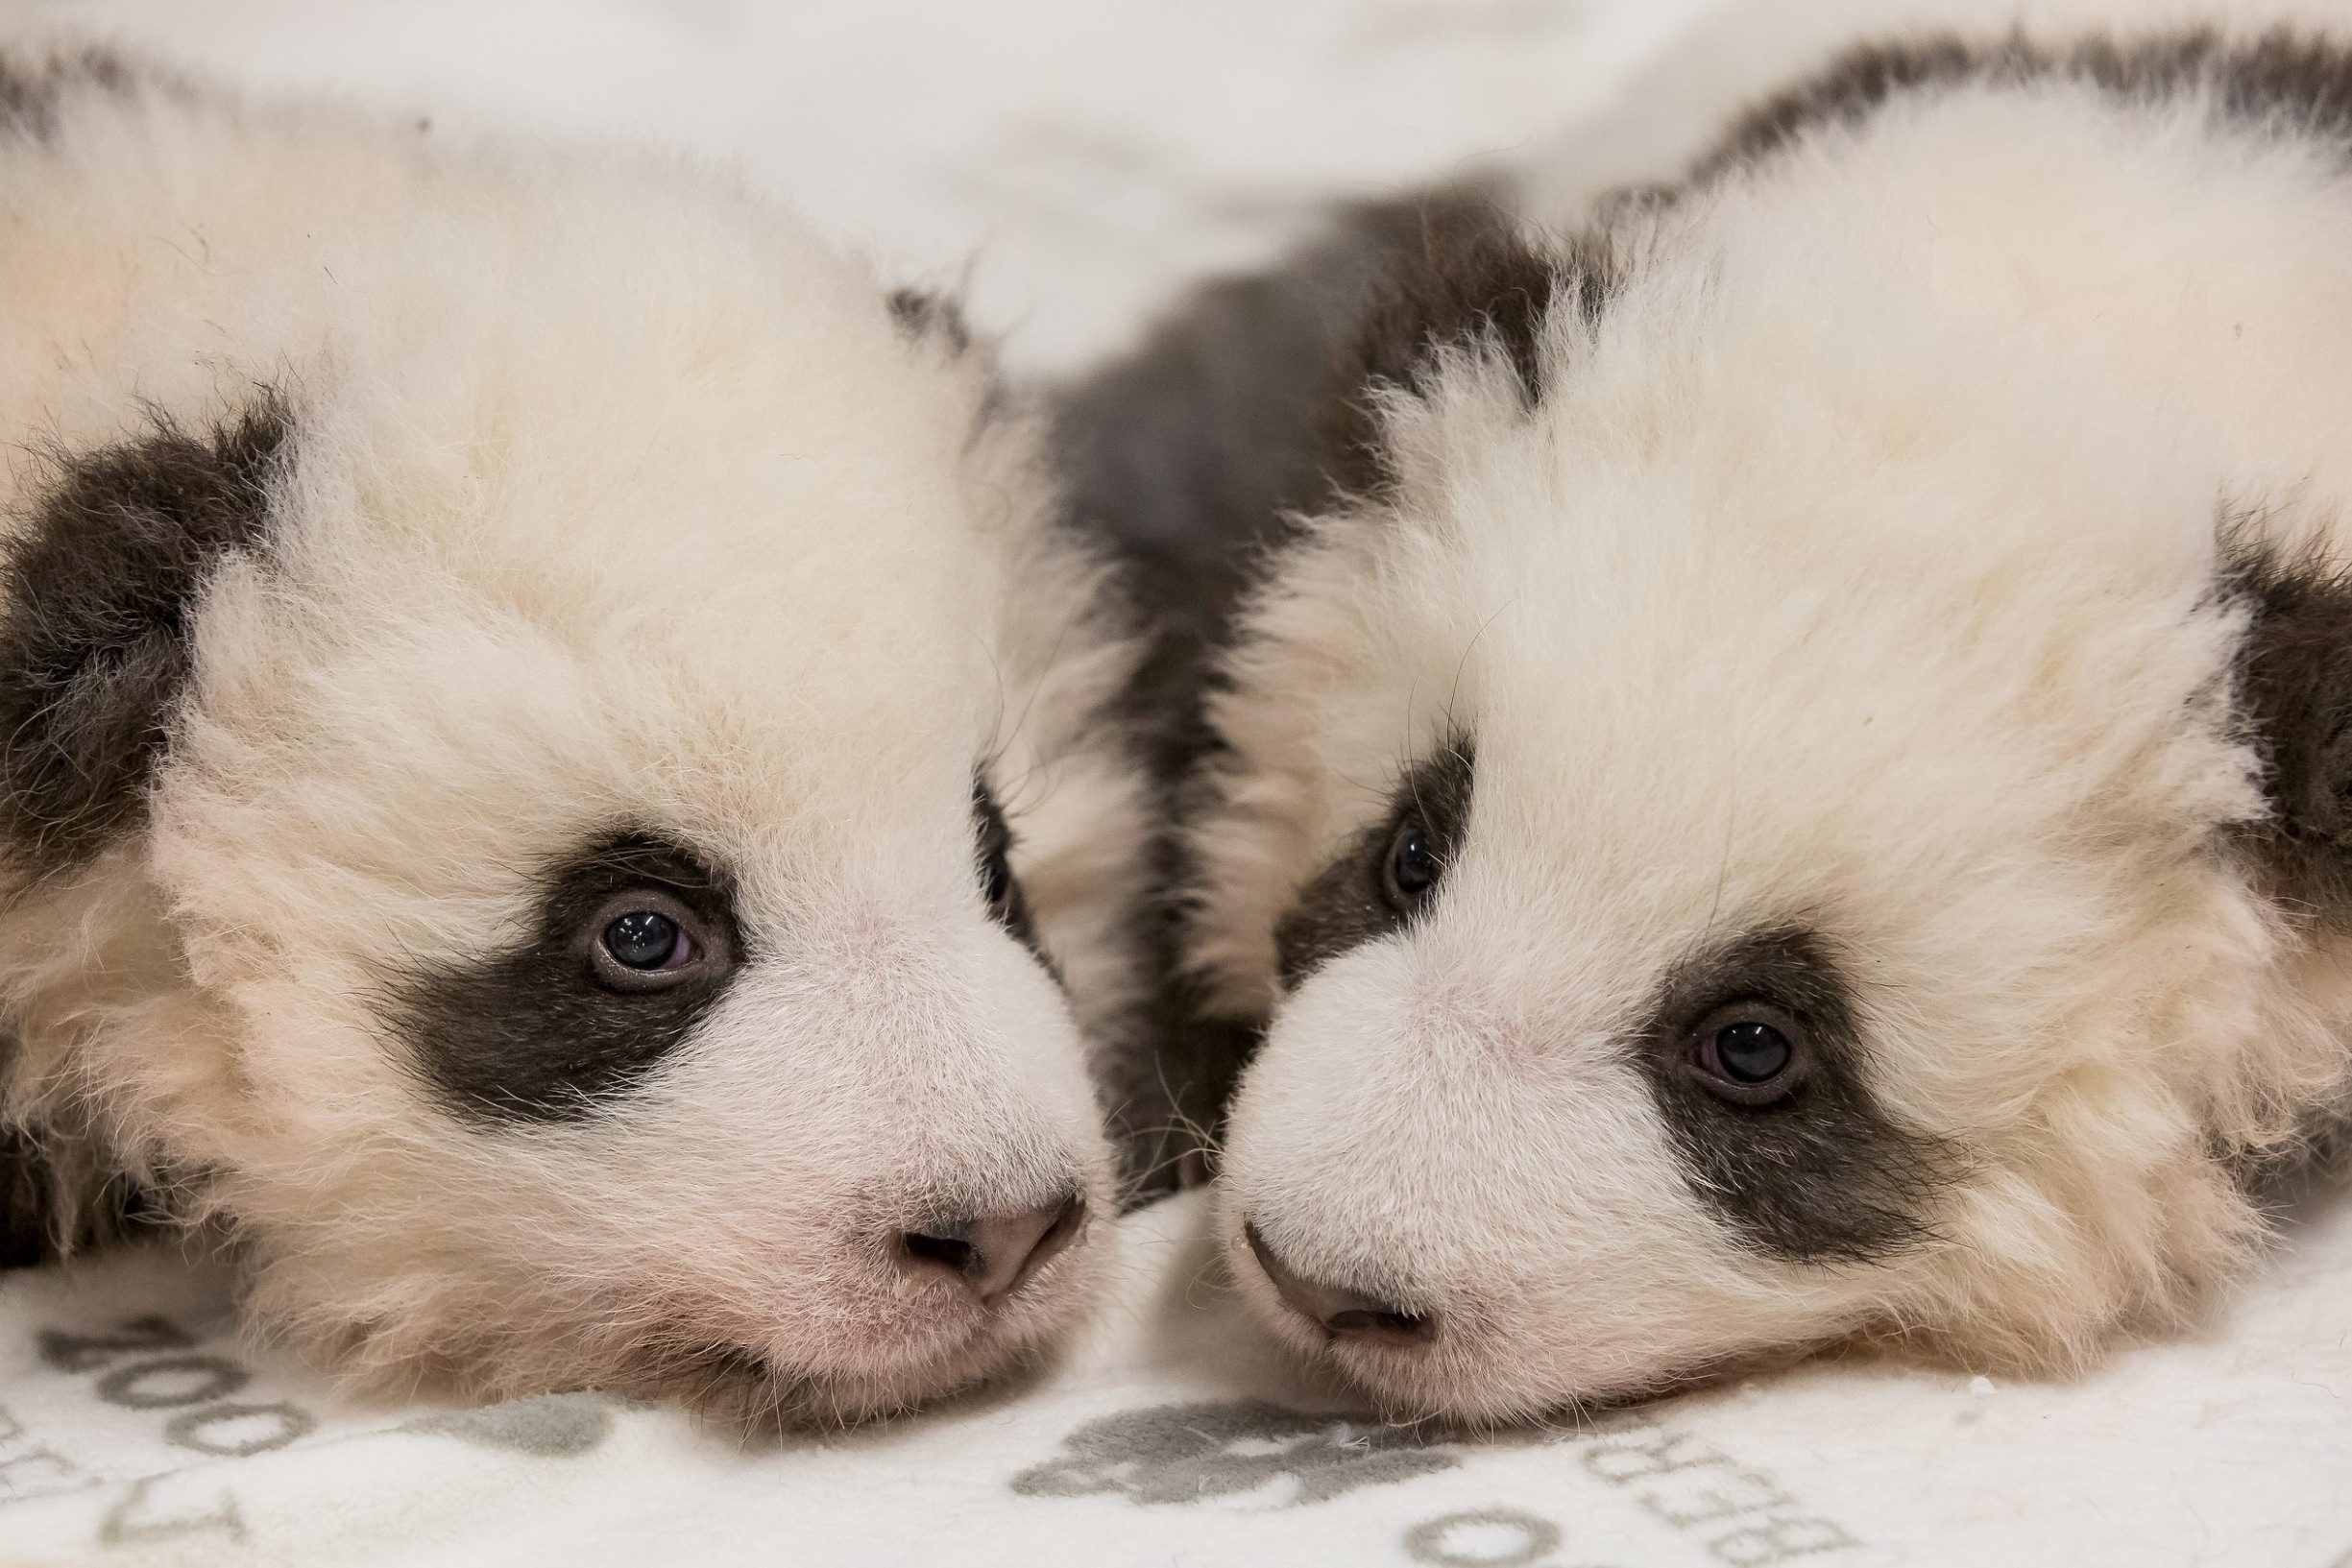 A handout photo shows twin panda cubs rest in Berlin Zoo, Germany, November 27, 2019. Picture taken November 27, 2019. Berlin Zoo/Handout via REUTERS ATTENTION EDITORS - THIS IMAGE WAS PROVIDED BY A THIRD PARTY. NO RESALES. NO ARCHIVES. MANDATORY CREDIT.